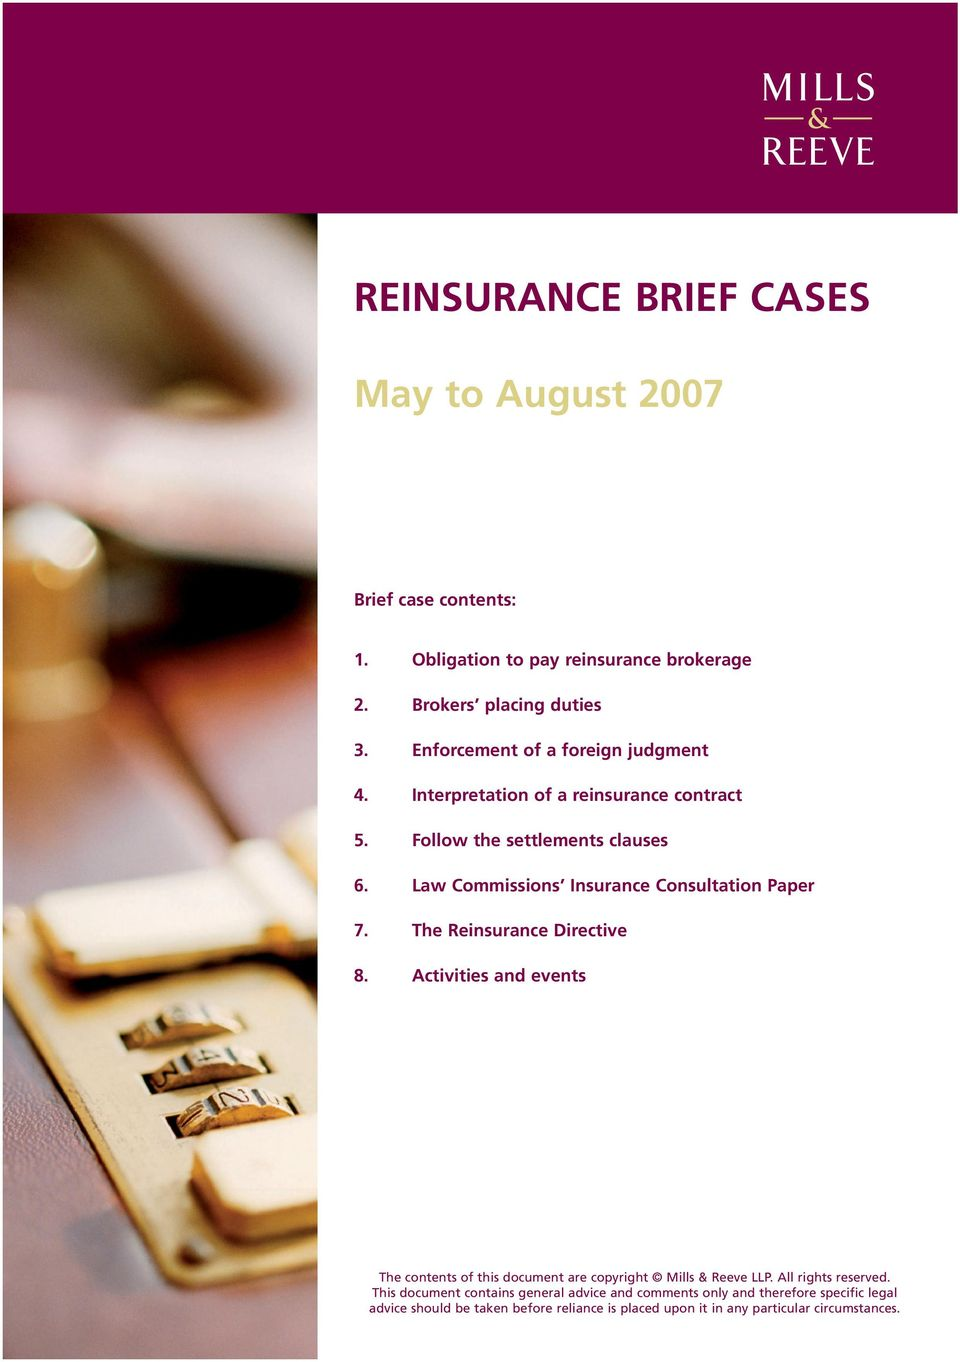 Law Commissions Insurance Consultation Paper 7. The Reinsurance Directive 8.